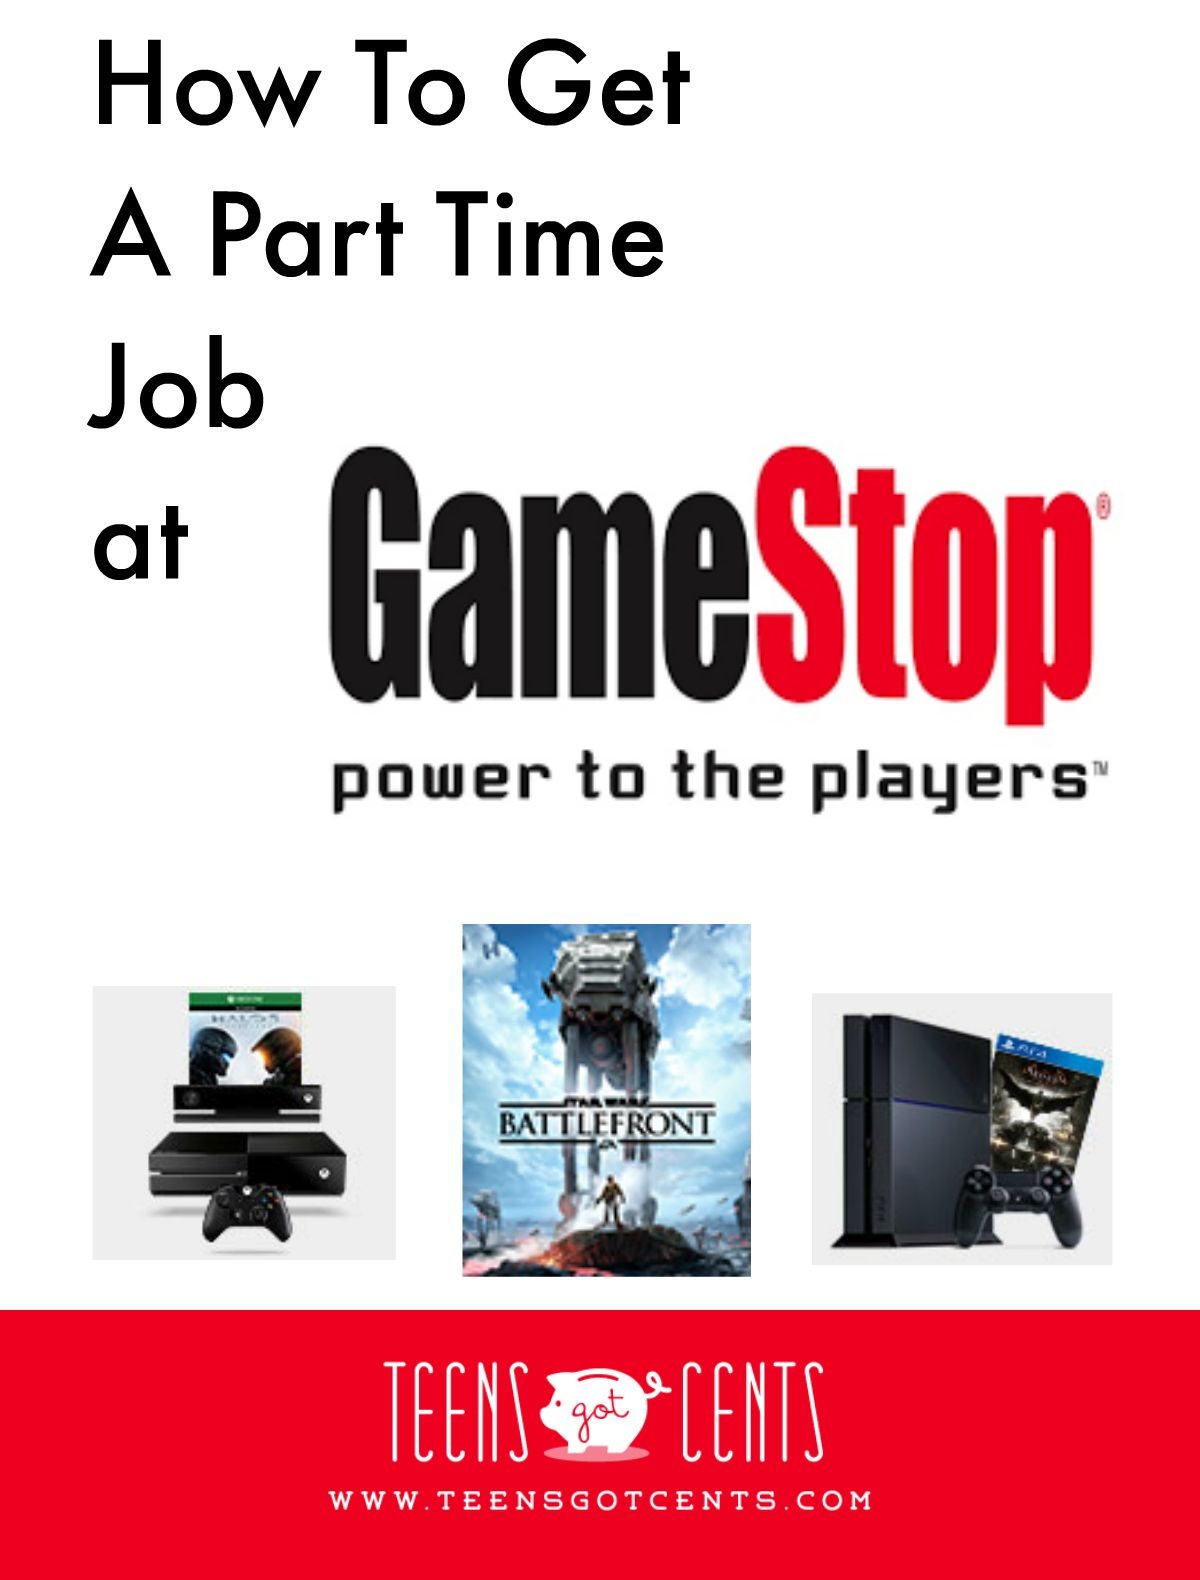 How Much Do You Get Paid To Work At Gamestop